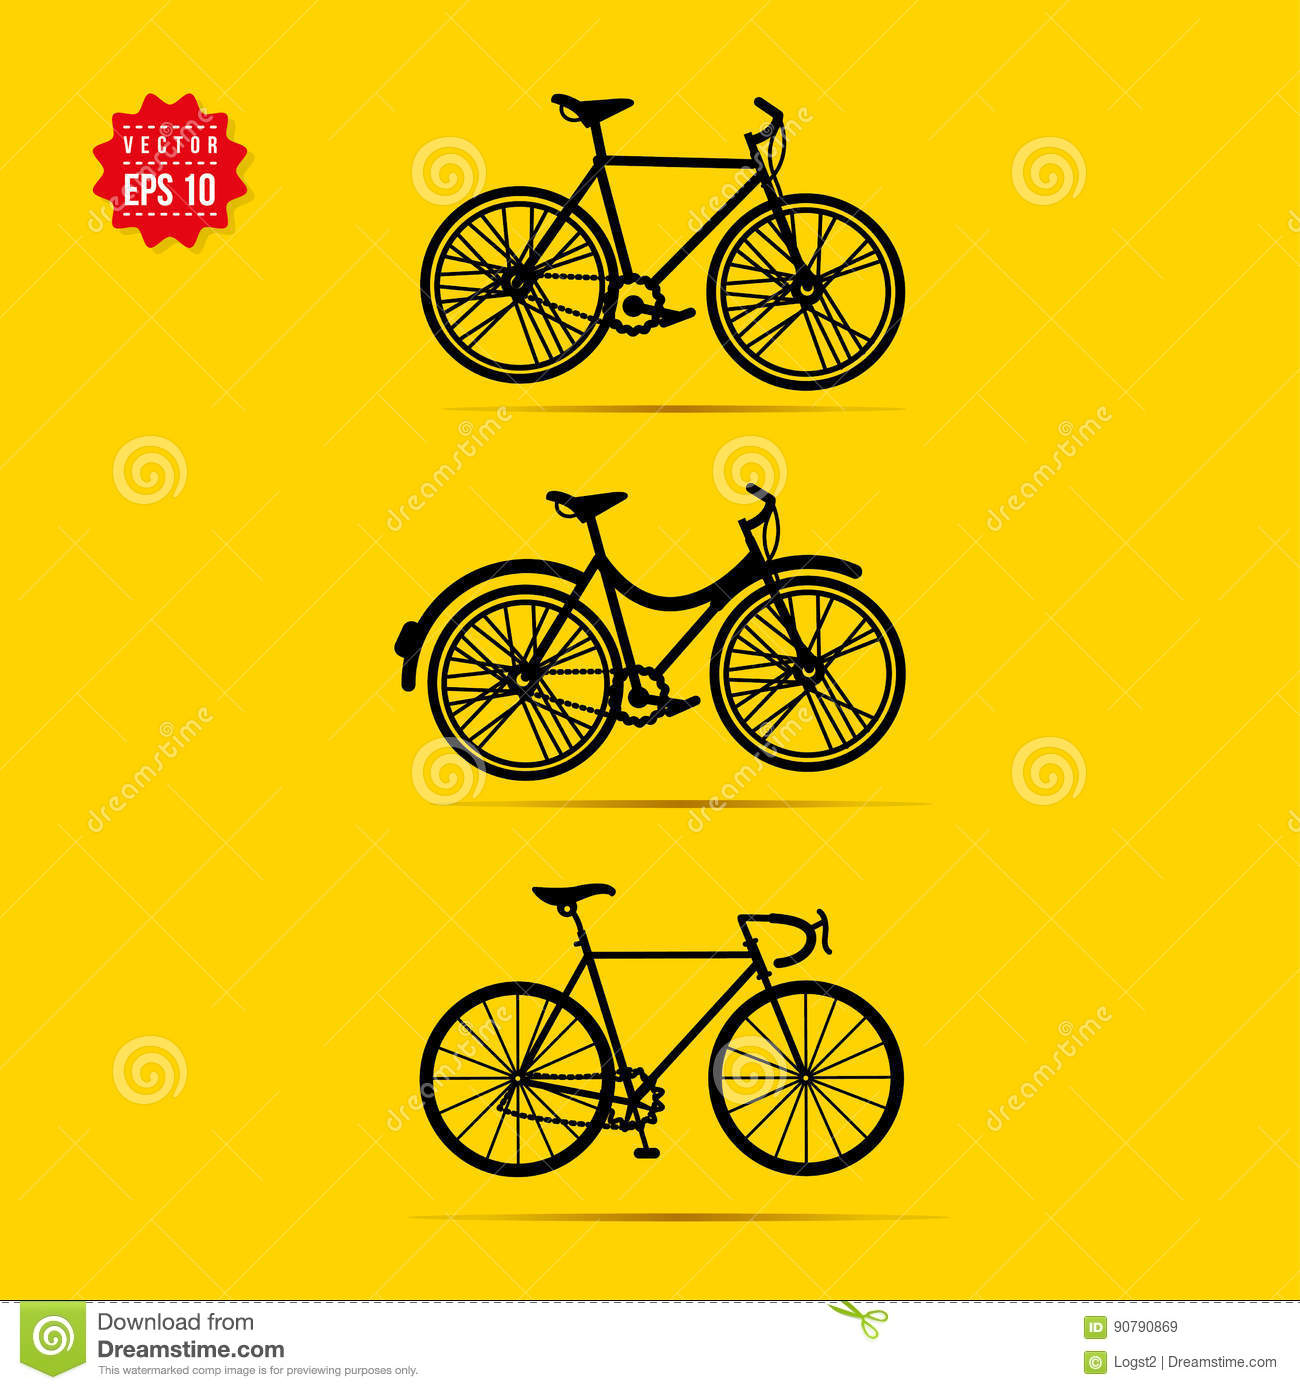 Simple bicycle illustration - photo#47